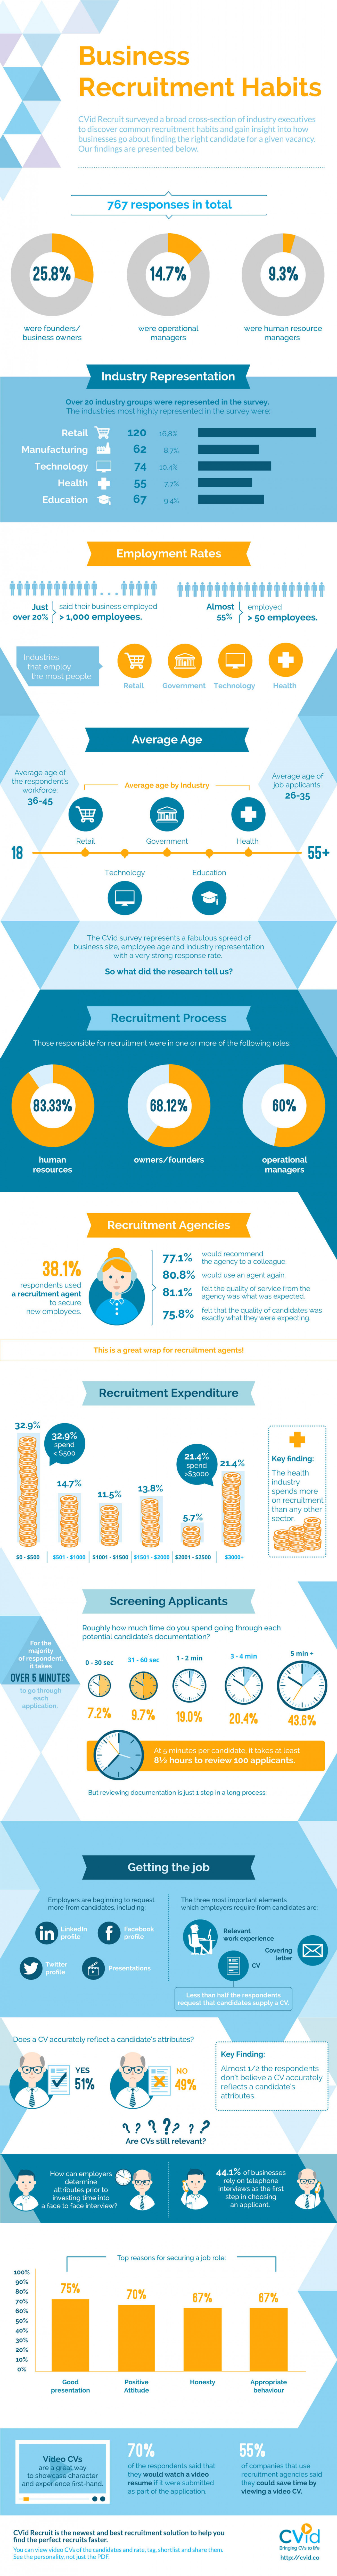 Business Recruitment Habits 2015 Infographic